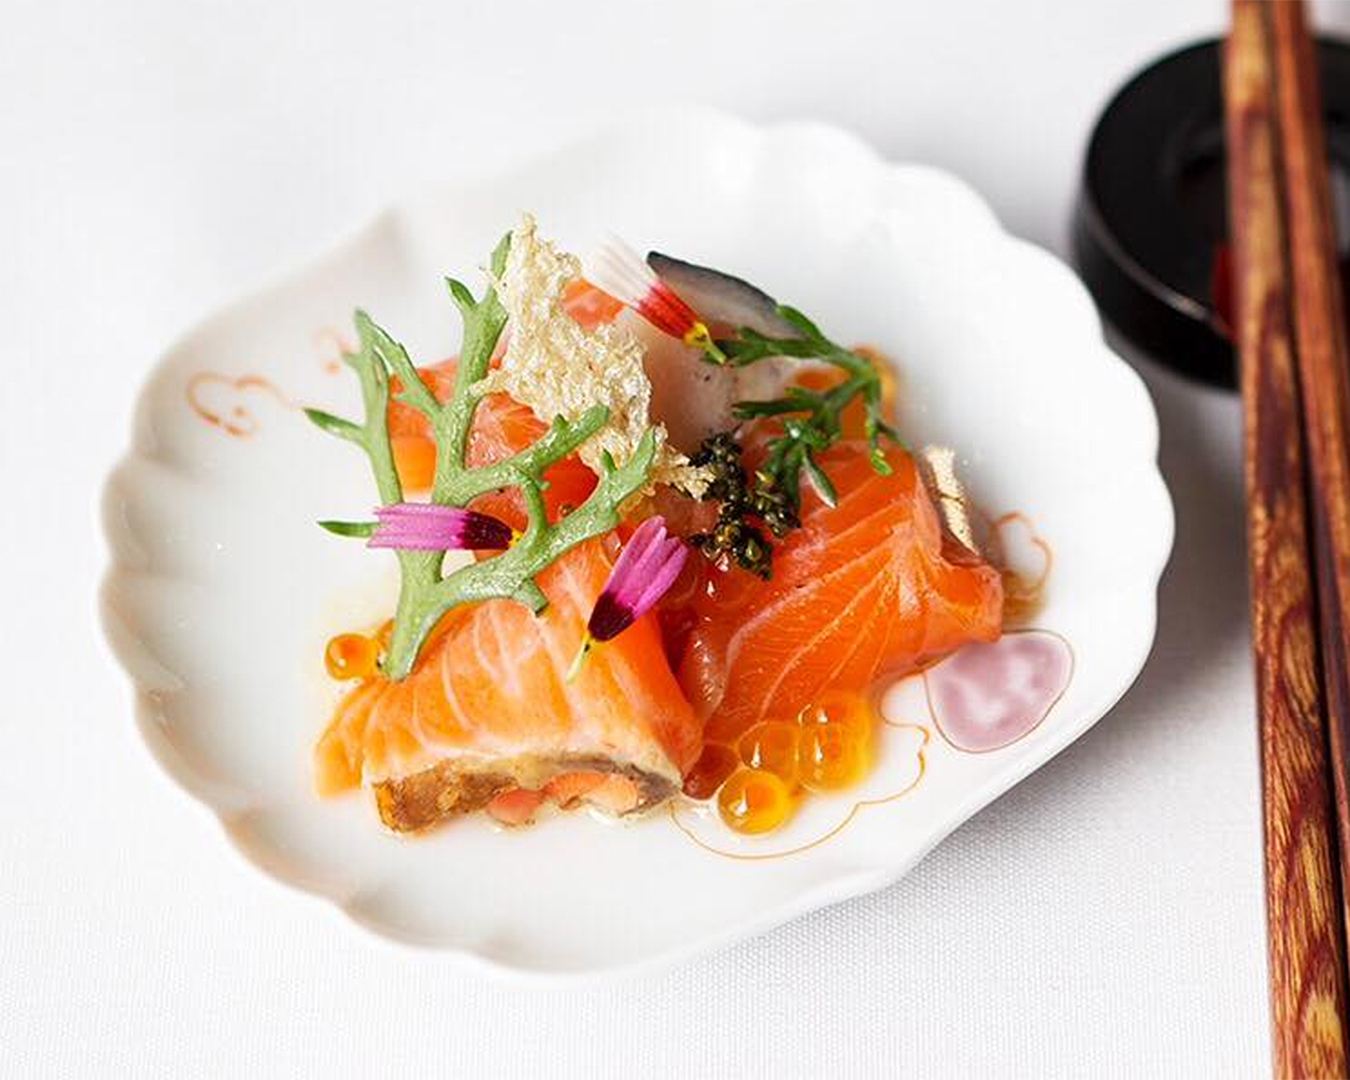 A sashimi dish sits on a white plate with chopsticks at the ready.